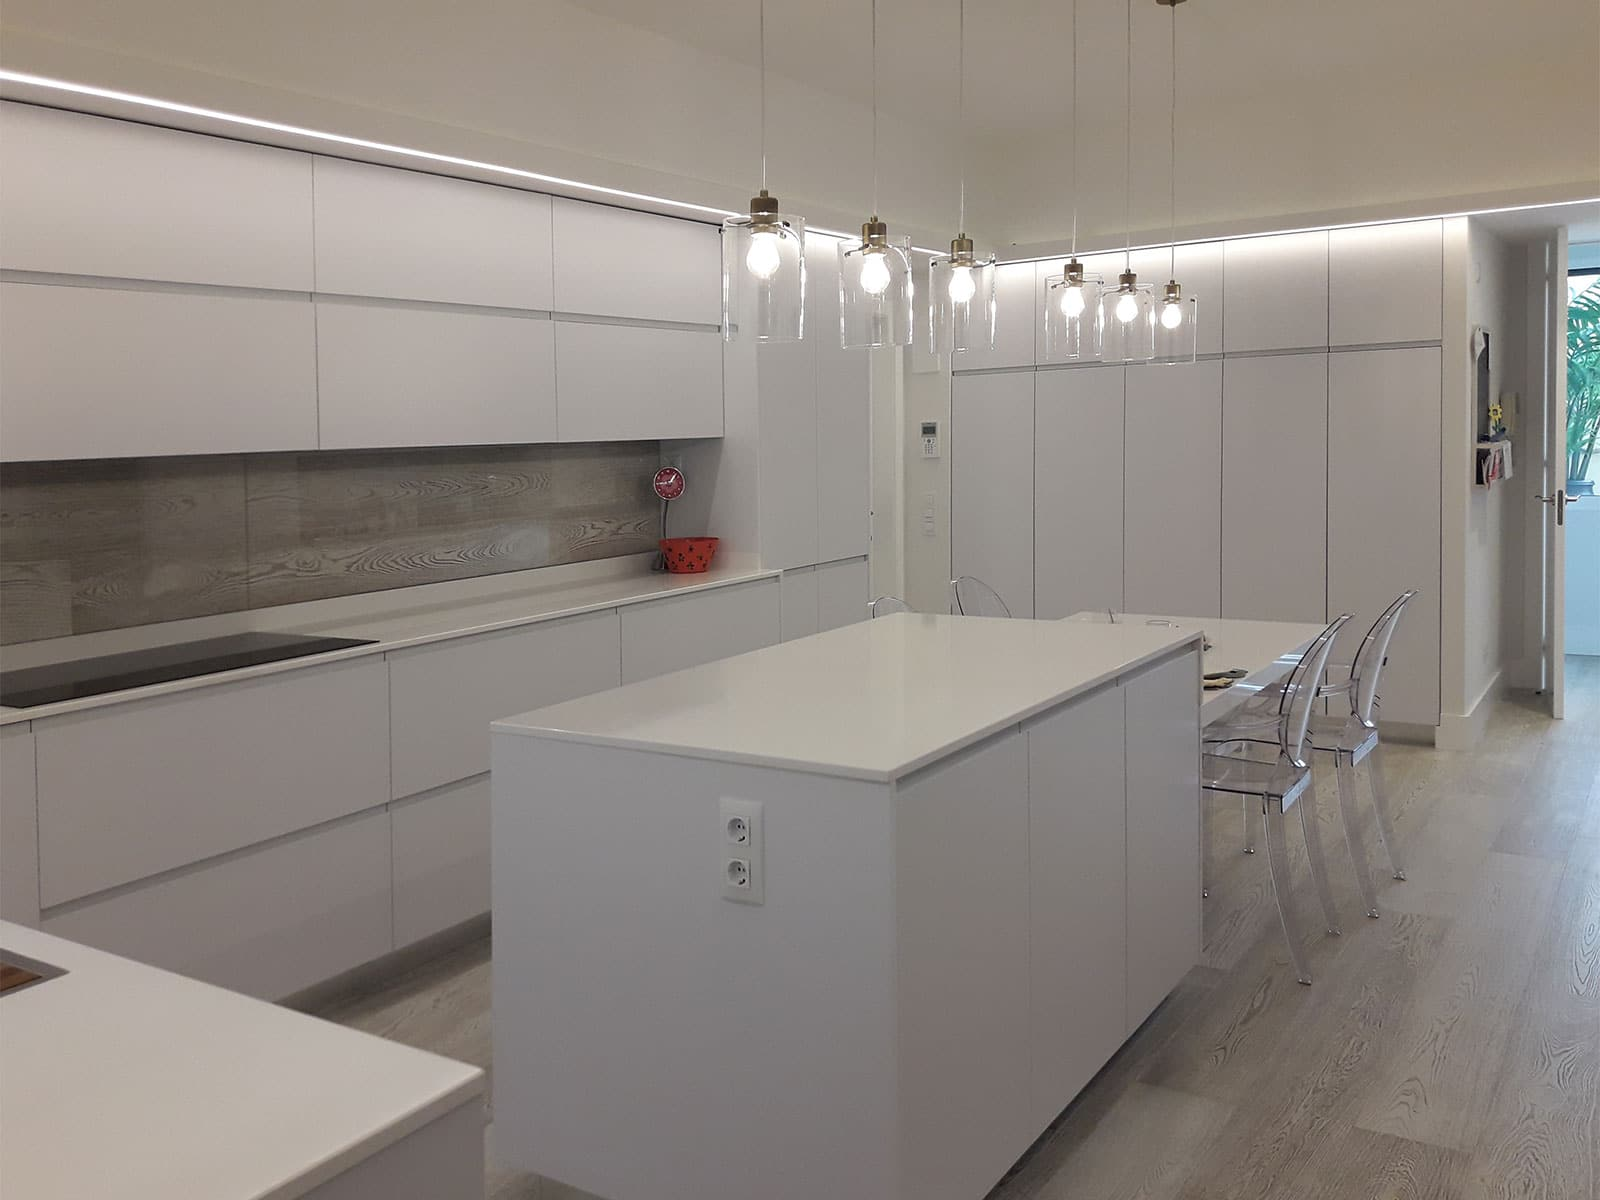 Cocina en color blanco brillo con isla central